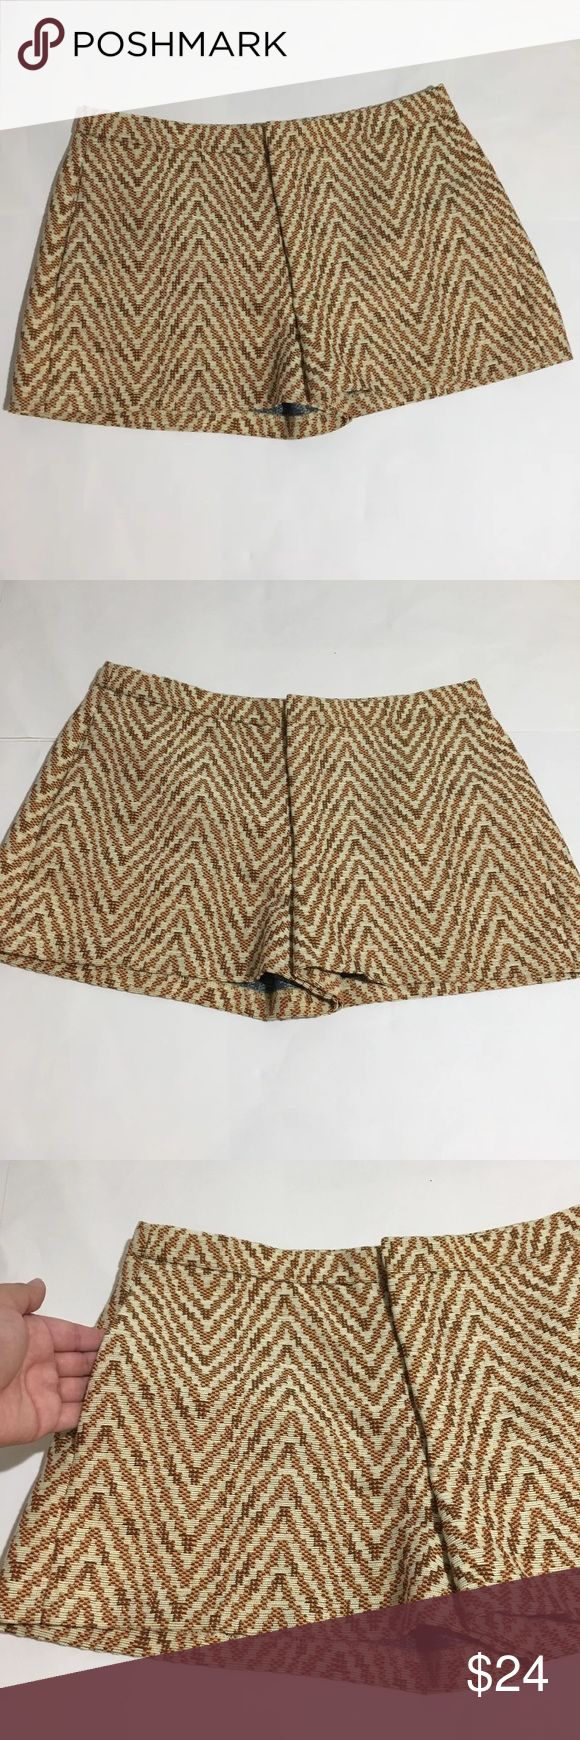 """Zara Woman Tapestry Chevron Brown Yellow Shorts M Zara Woman yellow, brown Tapestry Chevron print shorts with pockets. Size M. 15"""" waist laying flat, 11.5"""" waist to hem. Excellent condition no flaws Zara Shorts"""